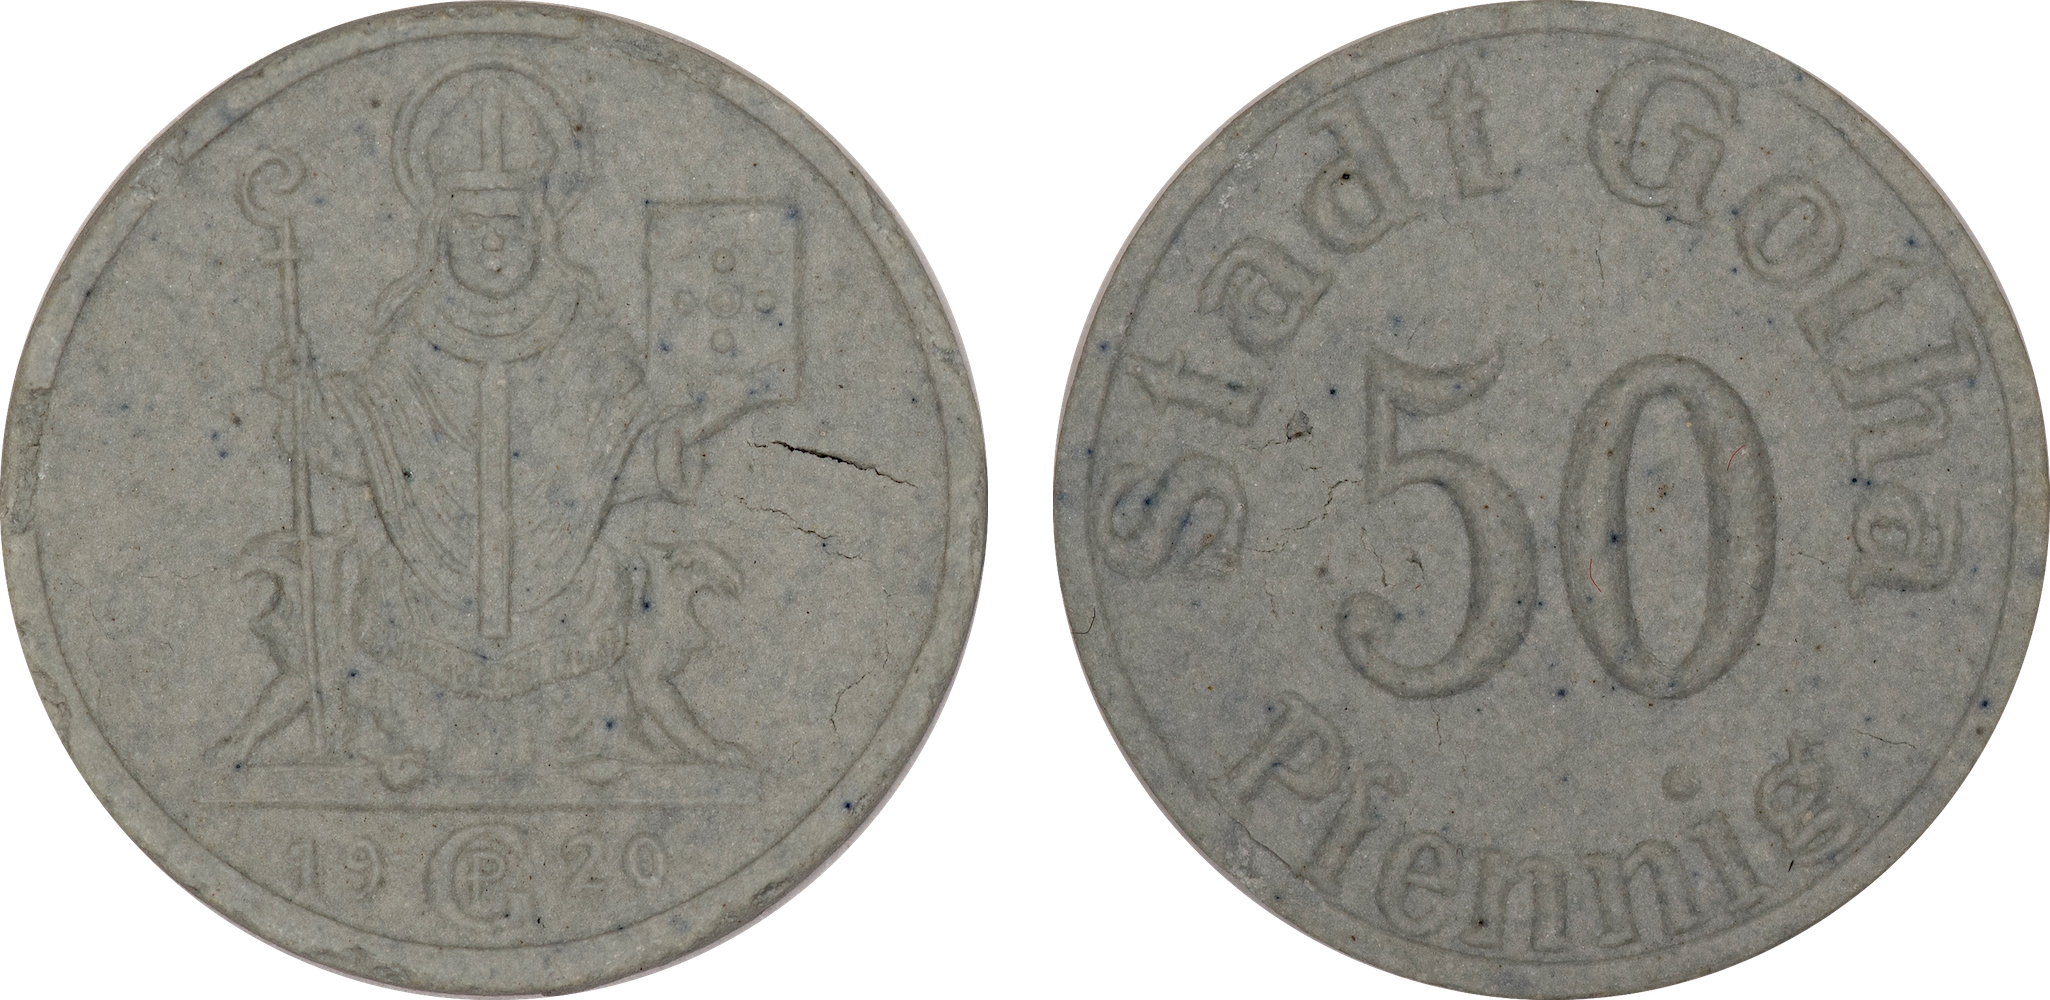 #15  Diameter: 23mm / Weight: 1.6g  Germany (Gotha) 1920 Porcelain 50 Pfennig  Scheuch #  Mintage: